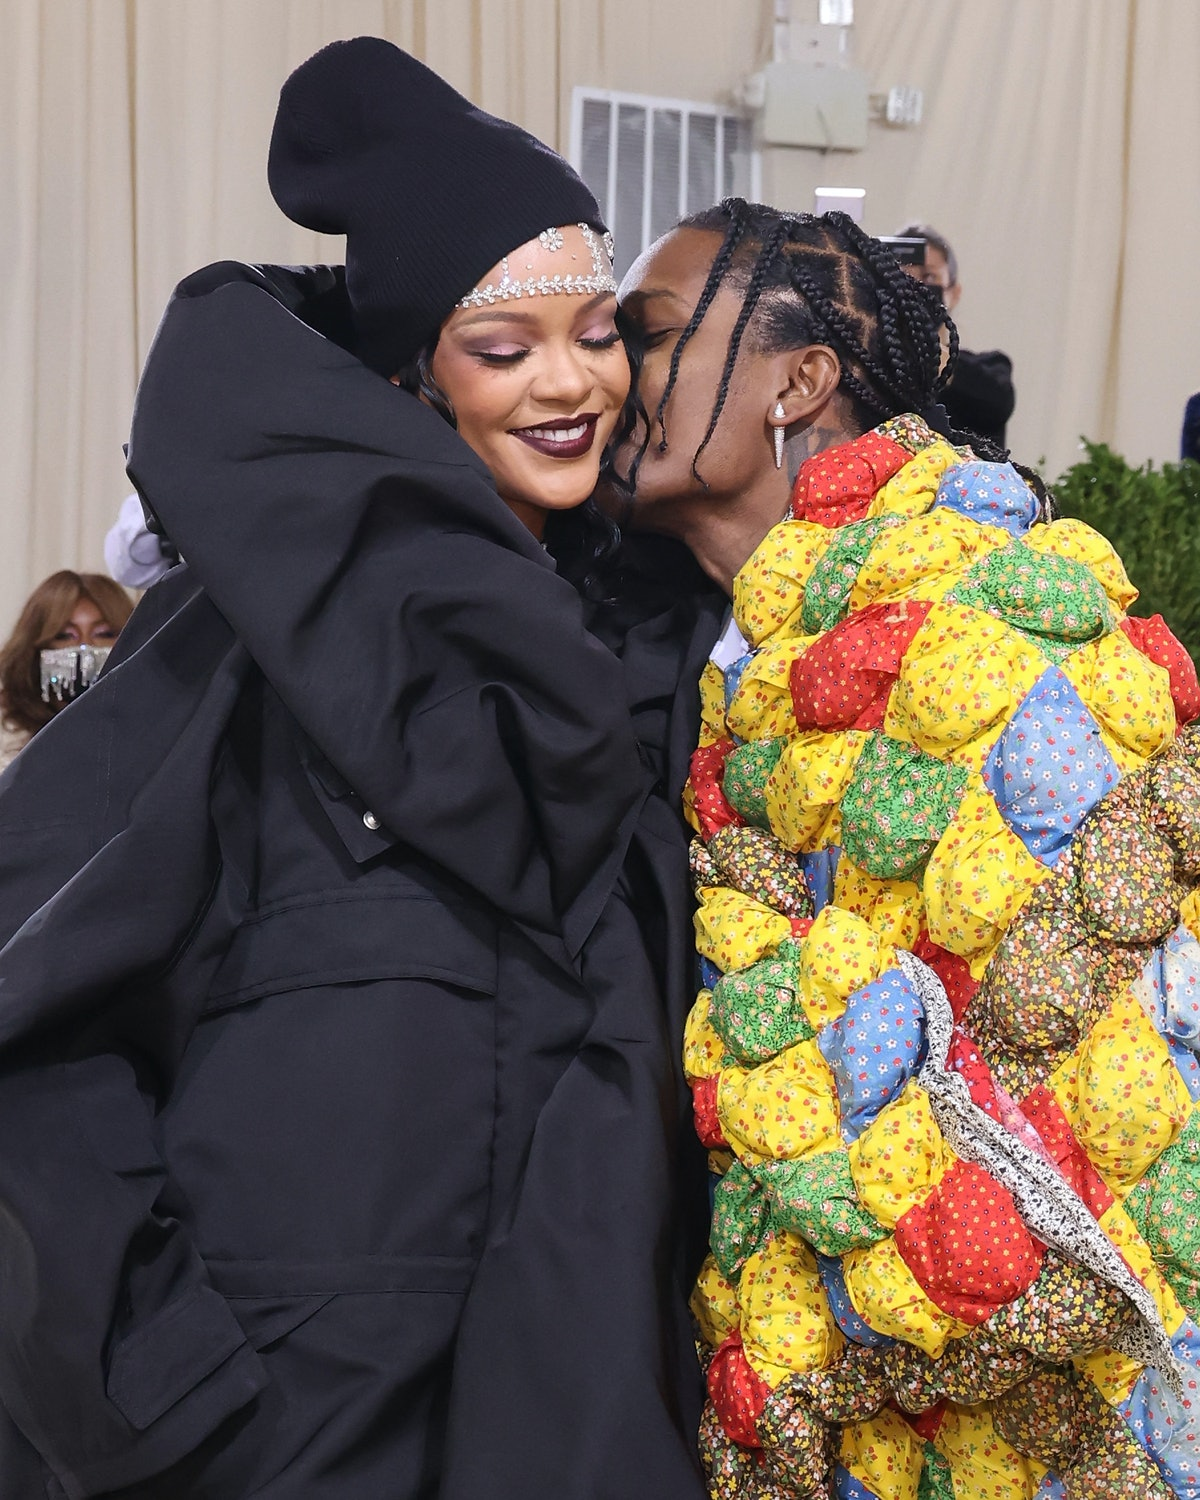 """NEW YORK, NEW YORK - SEPTEMBER 13: Rihanna and ASAP Rocky attend the 2021 Met Gala benefit """"In Ameri..."""